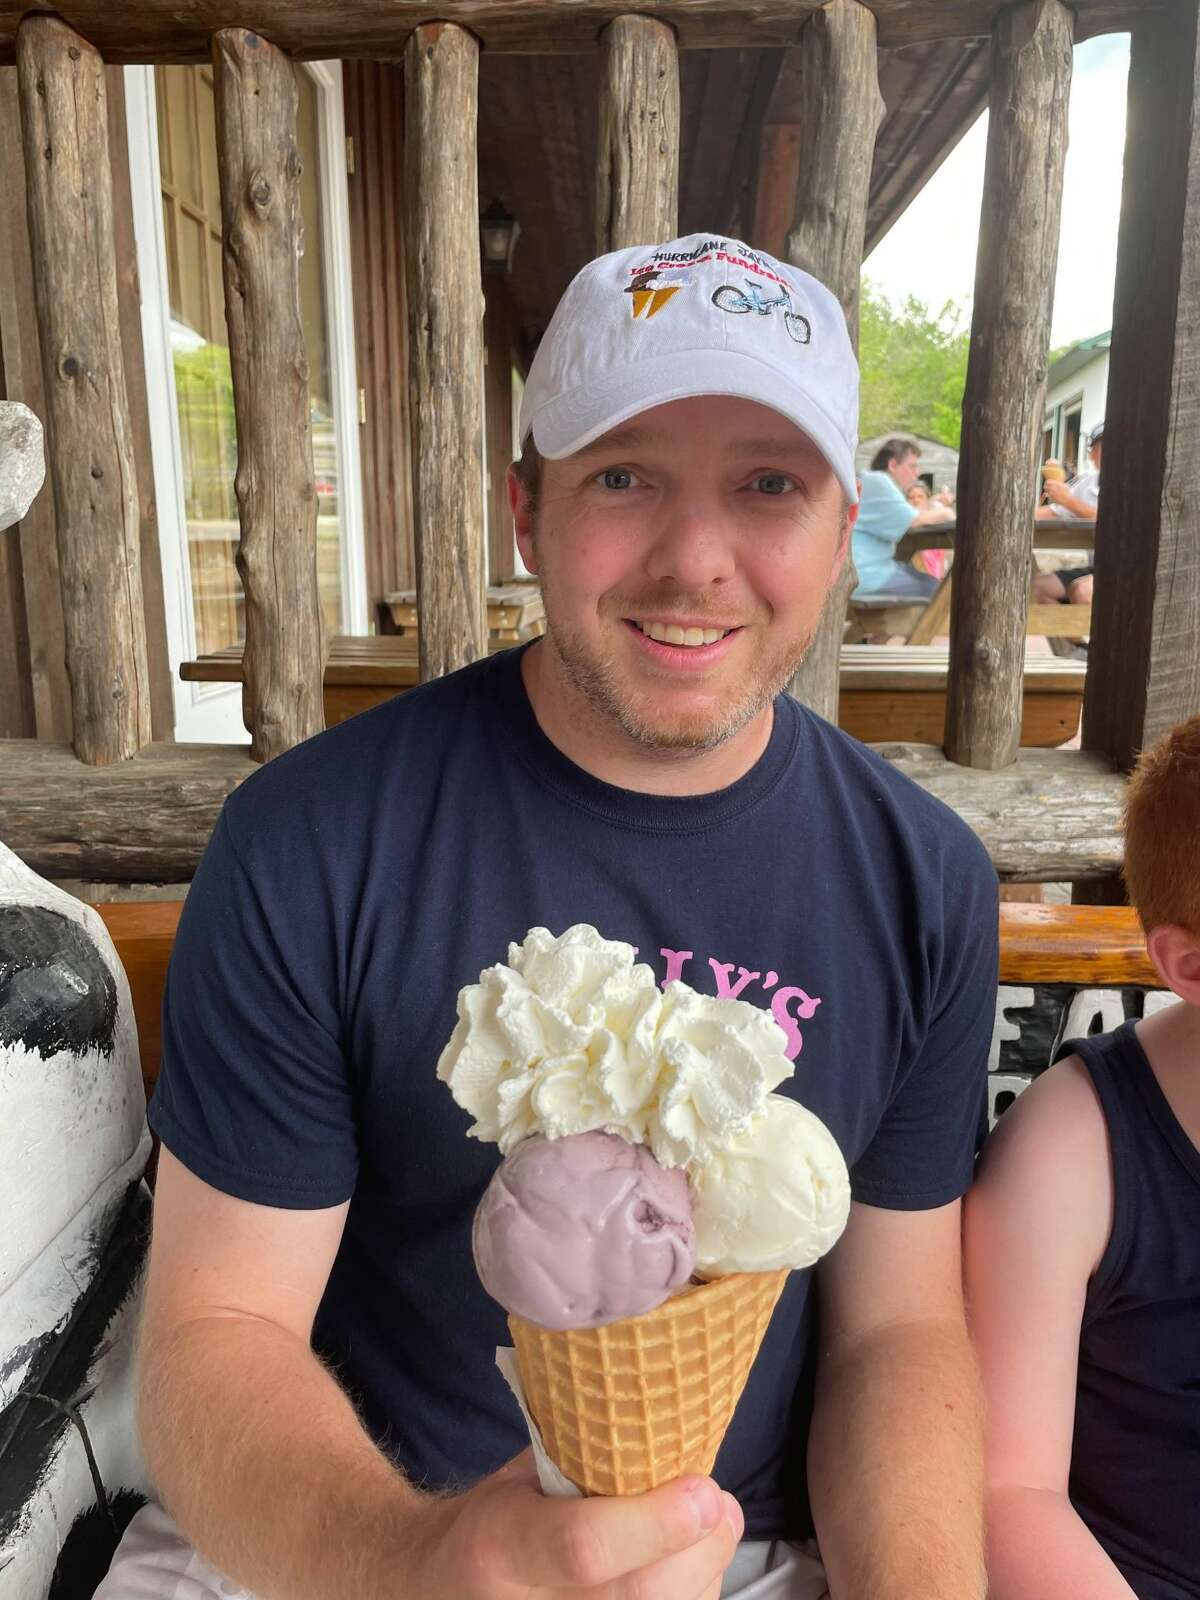 Craig Behun, the voice behind the CT Ice Cream Tour Instagram account, has visited over 200 ice cream shops in Connecticut to sample their homemade flavors.